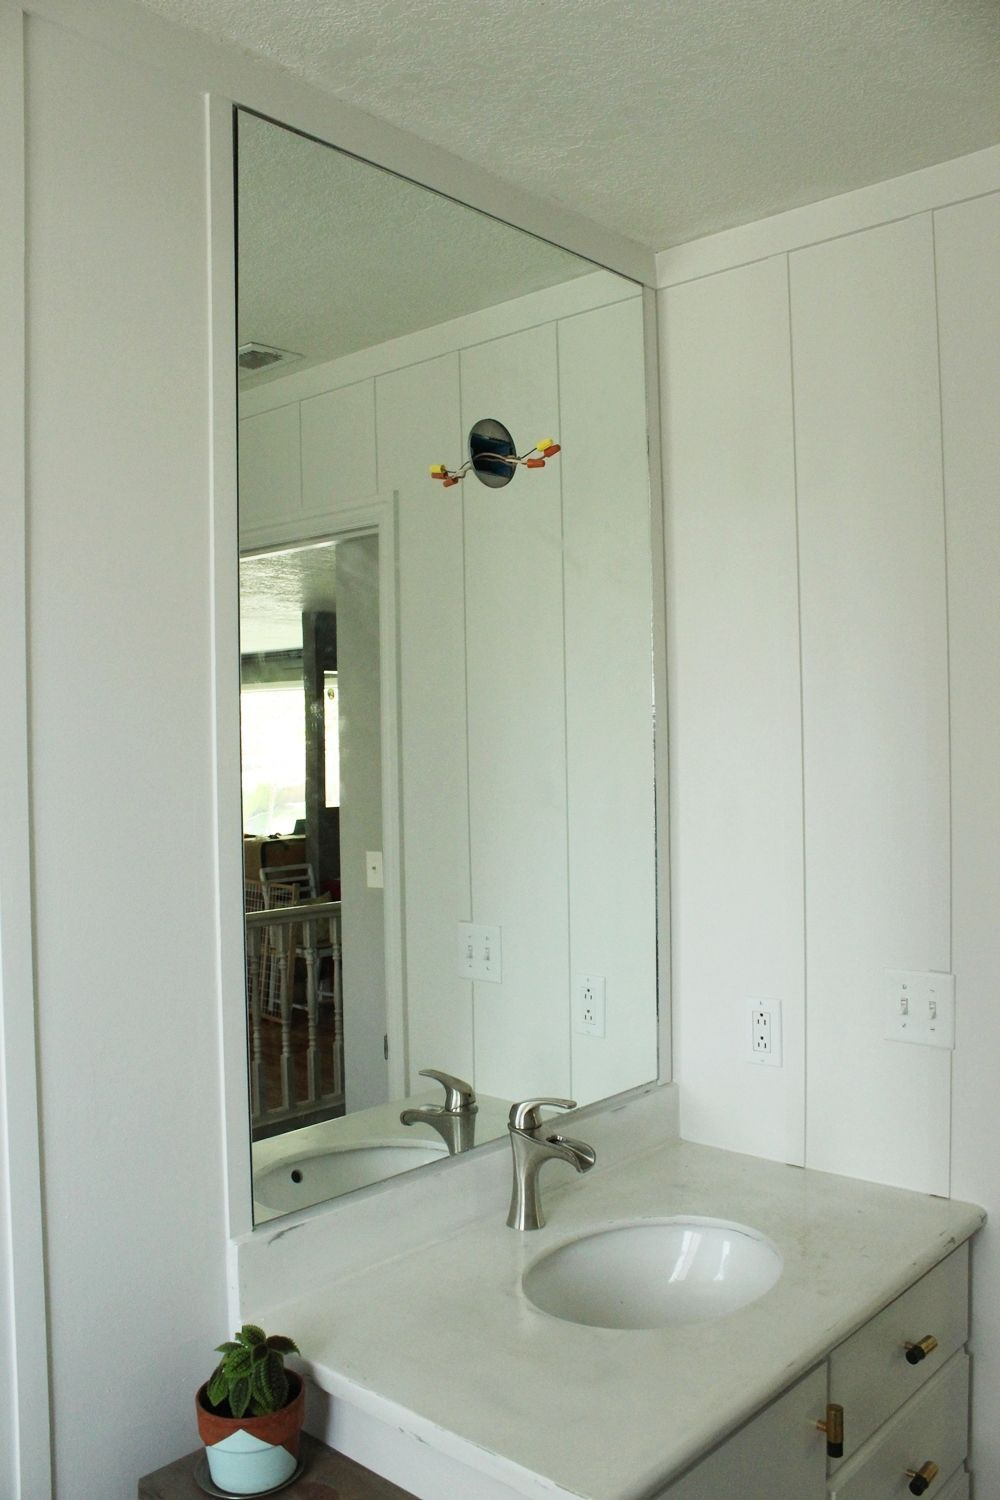 Superb How To Professionally Install A Bathroom Mirror